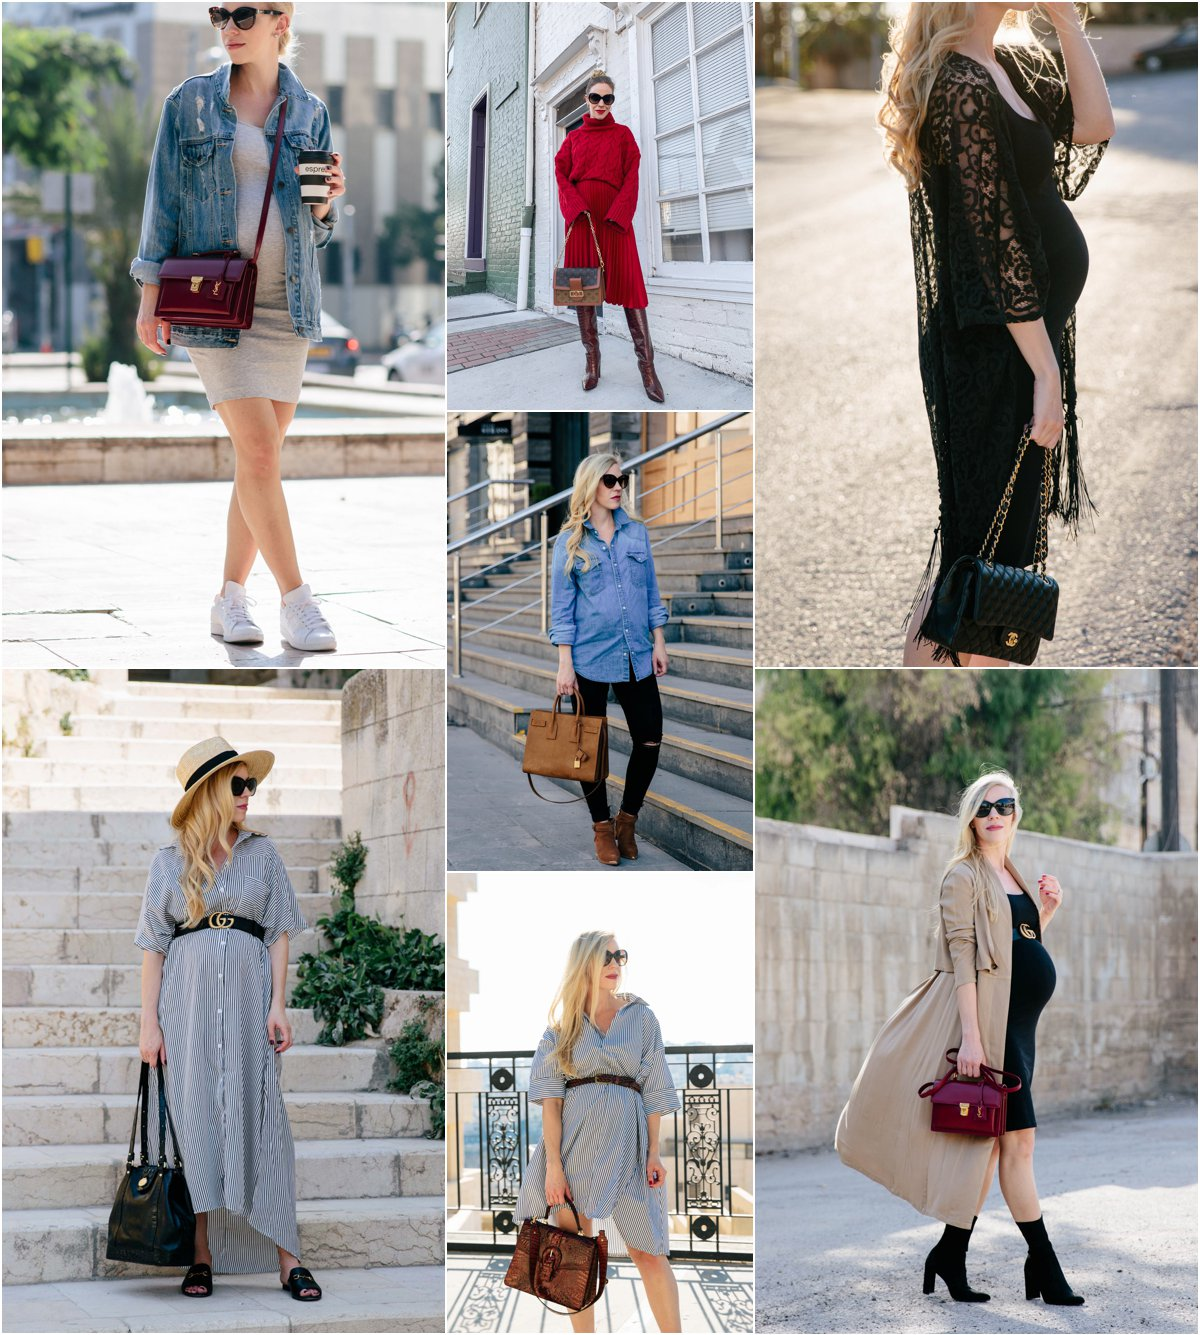 Meagan Brandon fashion blogger of Meagan's Moda shares non-maternity clothing that works for a growing baby bump, pregnancy style hacks